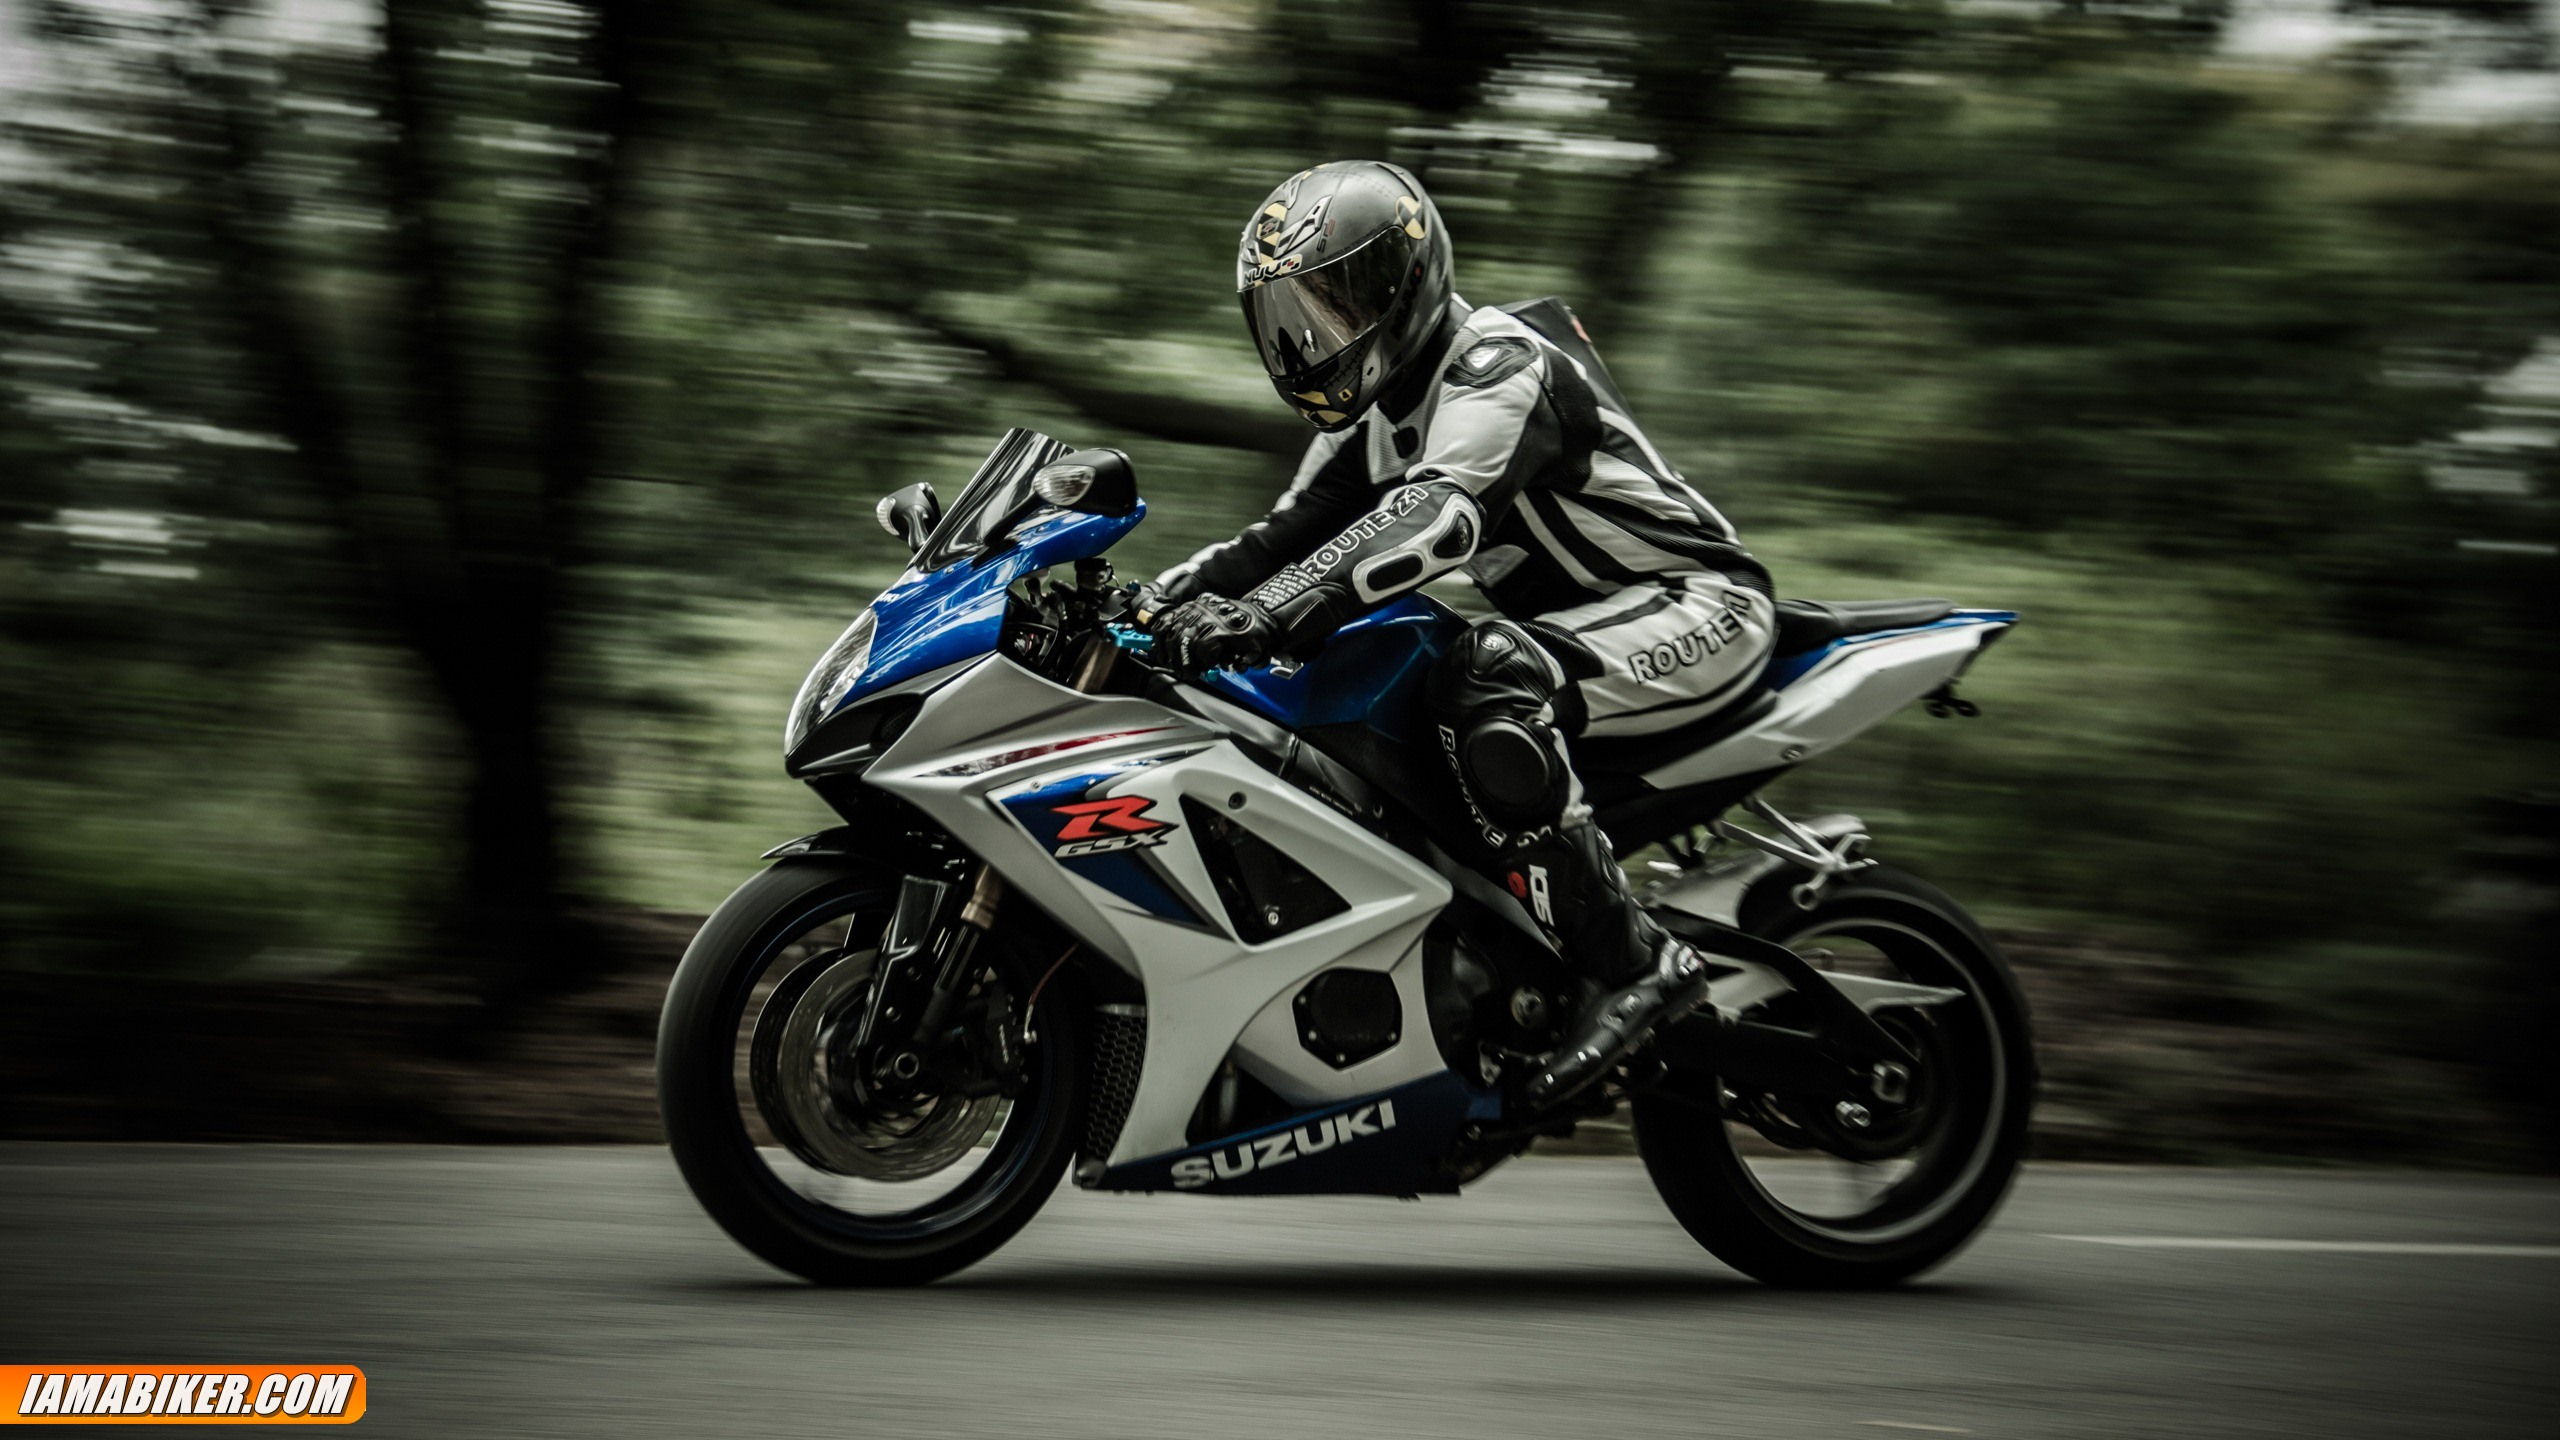 Suzuki GSX-R 1000 wallpapers - 08